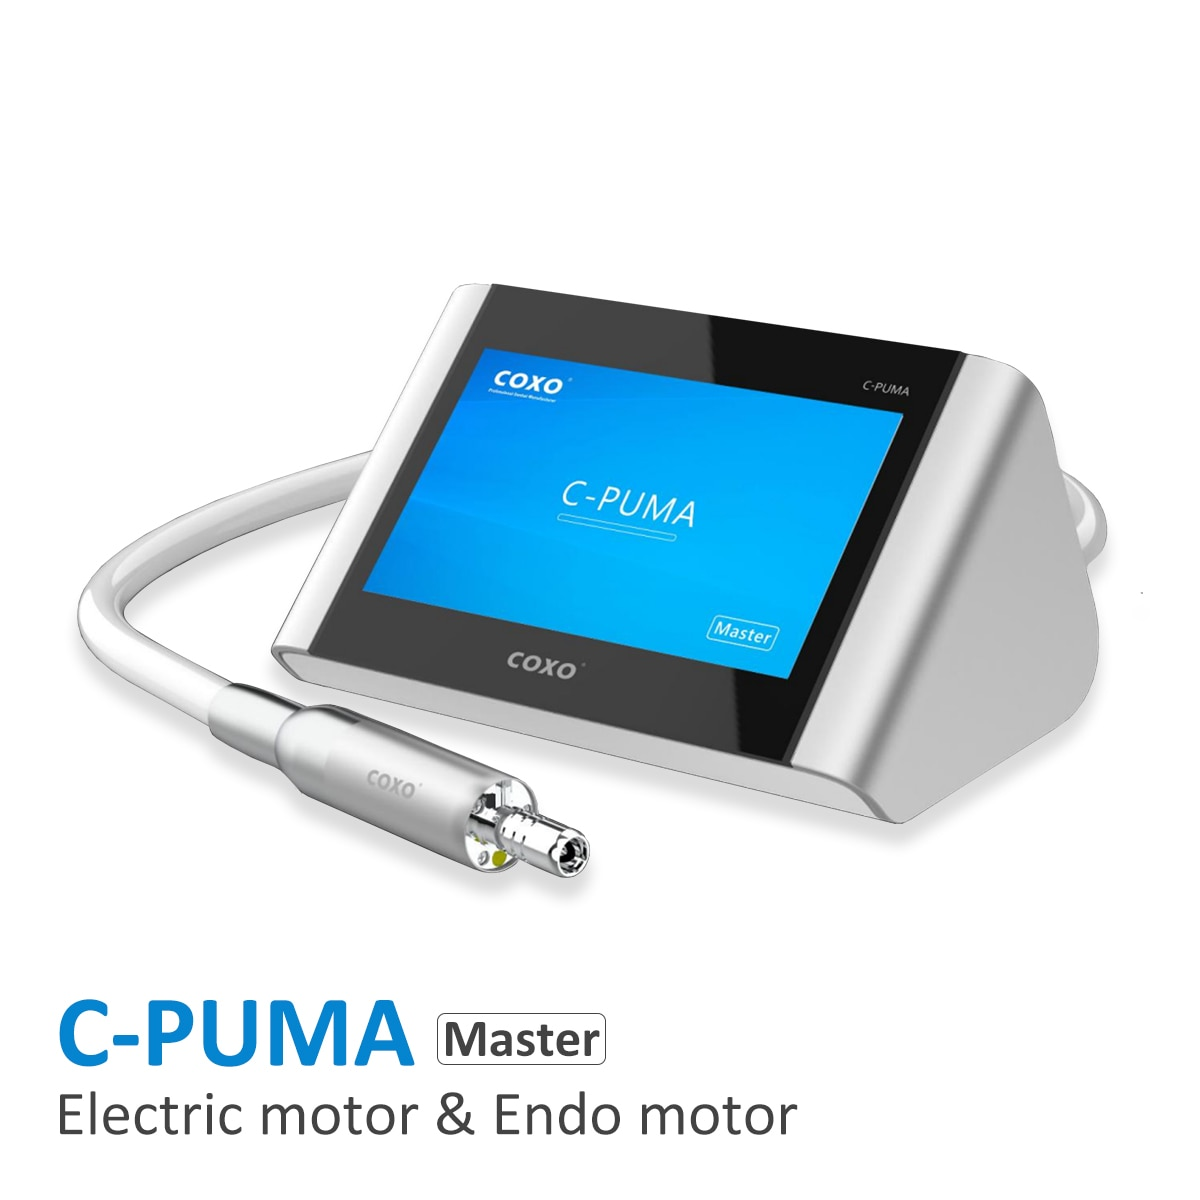 COXO  C-Puma master Dental Electric Motor  with endo motor 2 in 1 , Technician Electrical  Switzerland Brushless Motor  100-2000